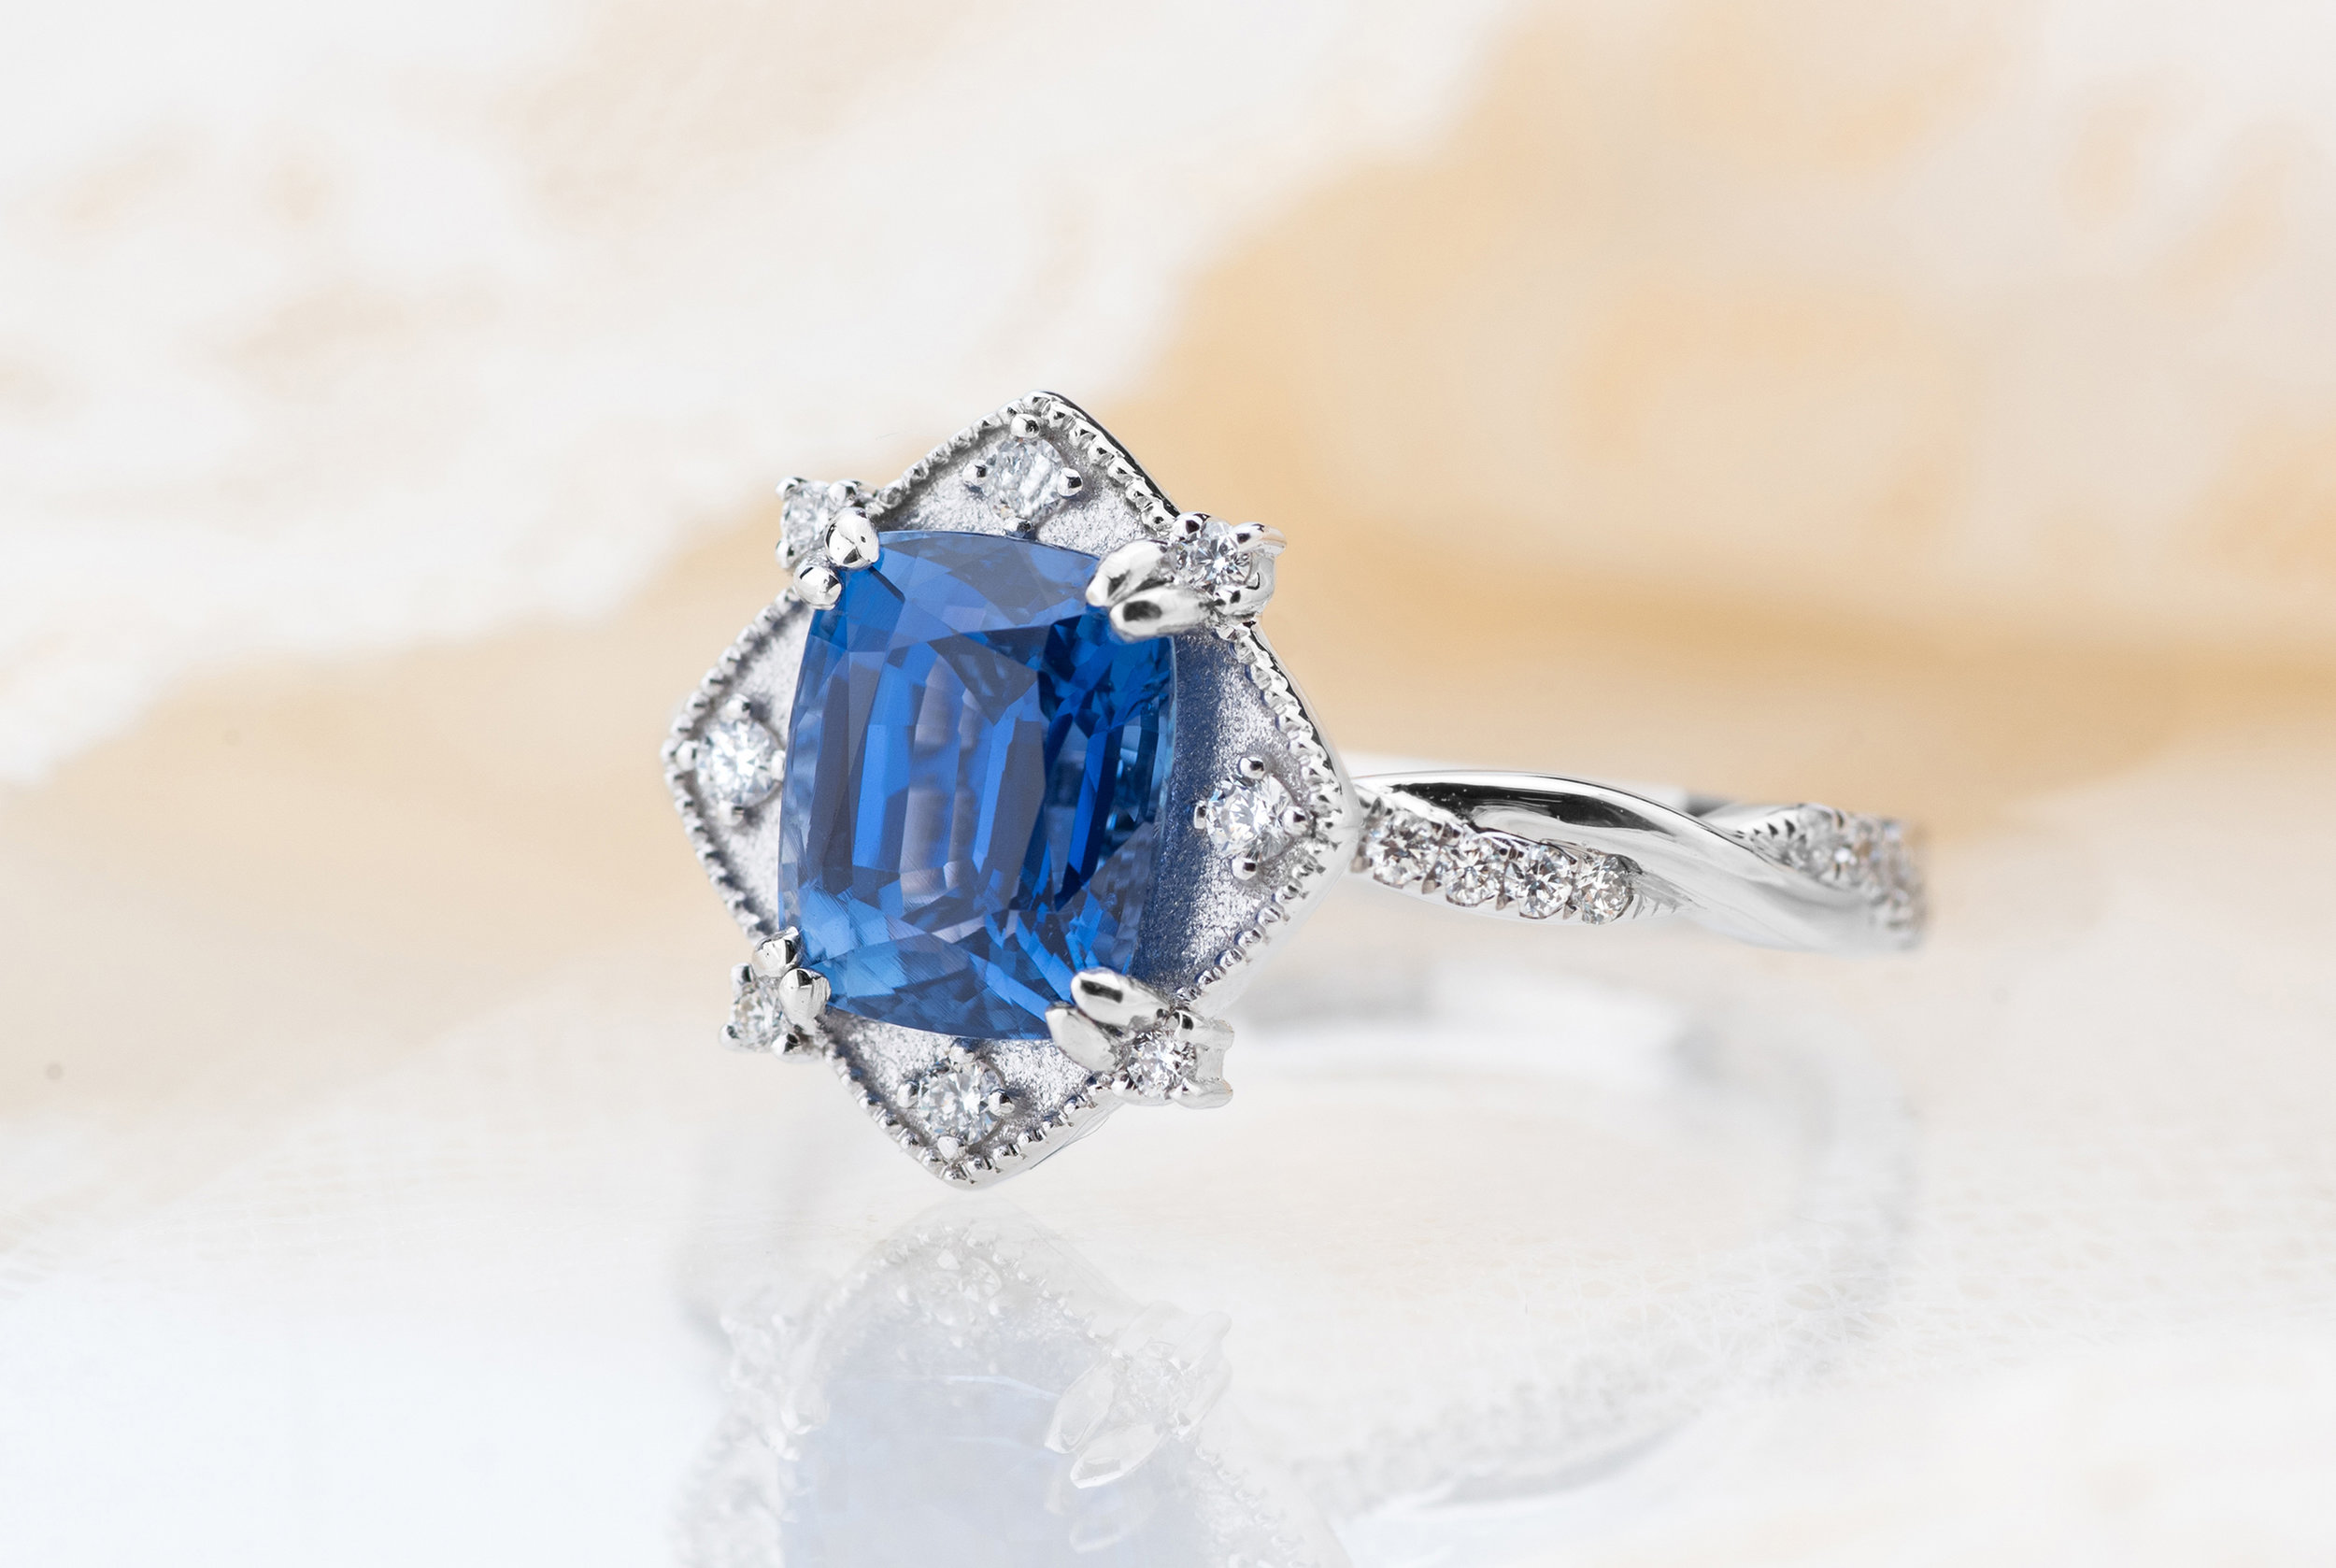 Choo Yilin Bespoke 18kt white gold engagement ring with a stunning 2.1ct Cornflower Blue Sapphire